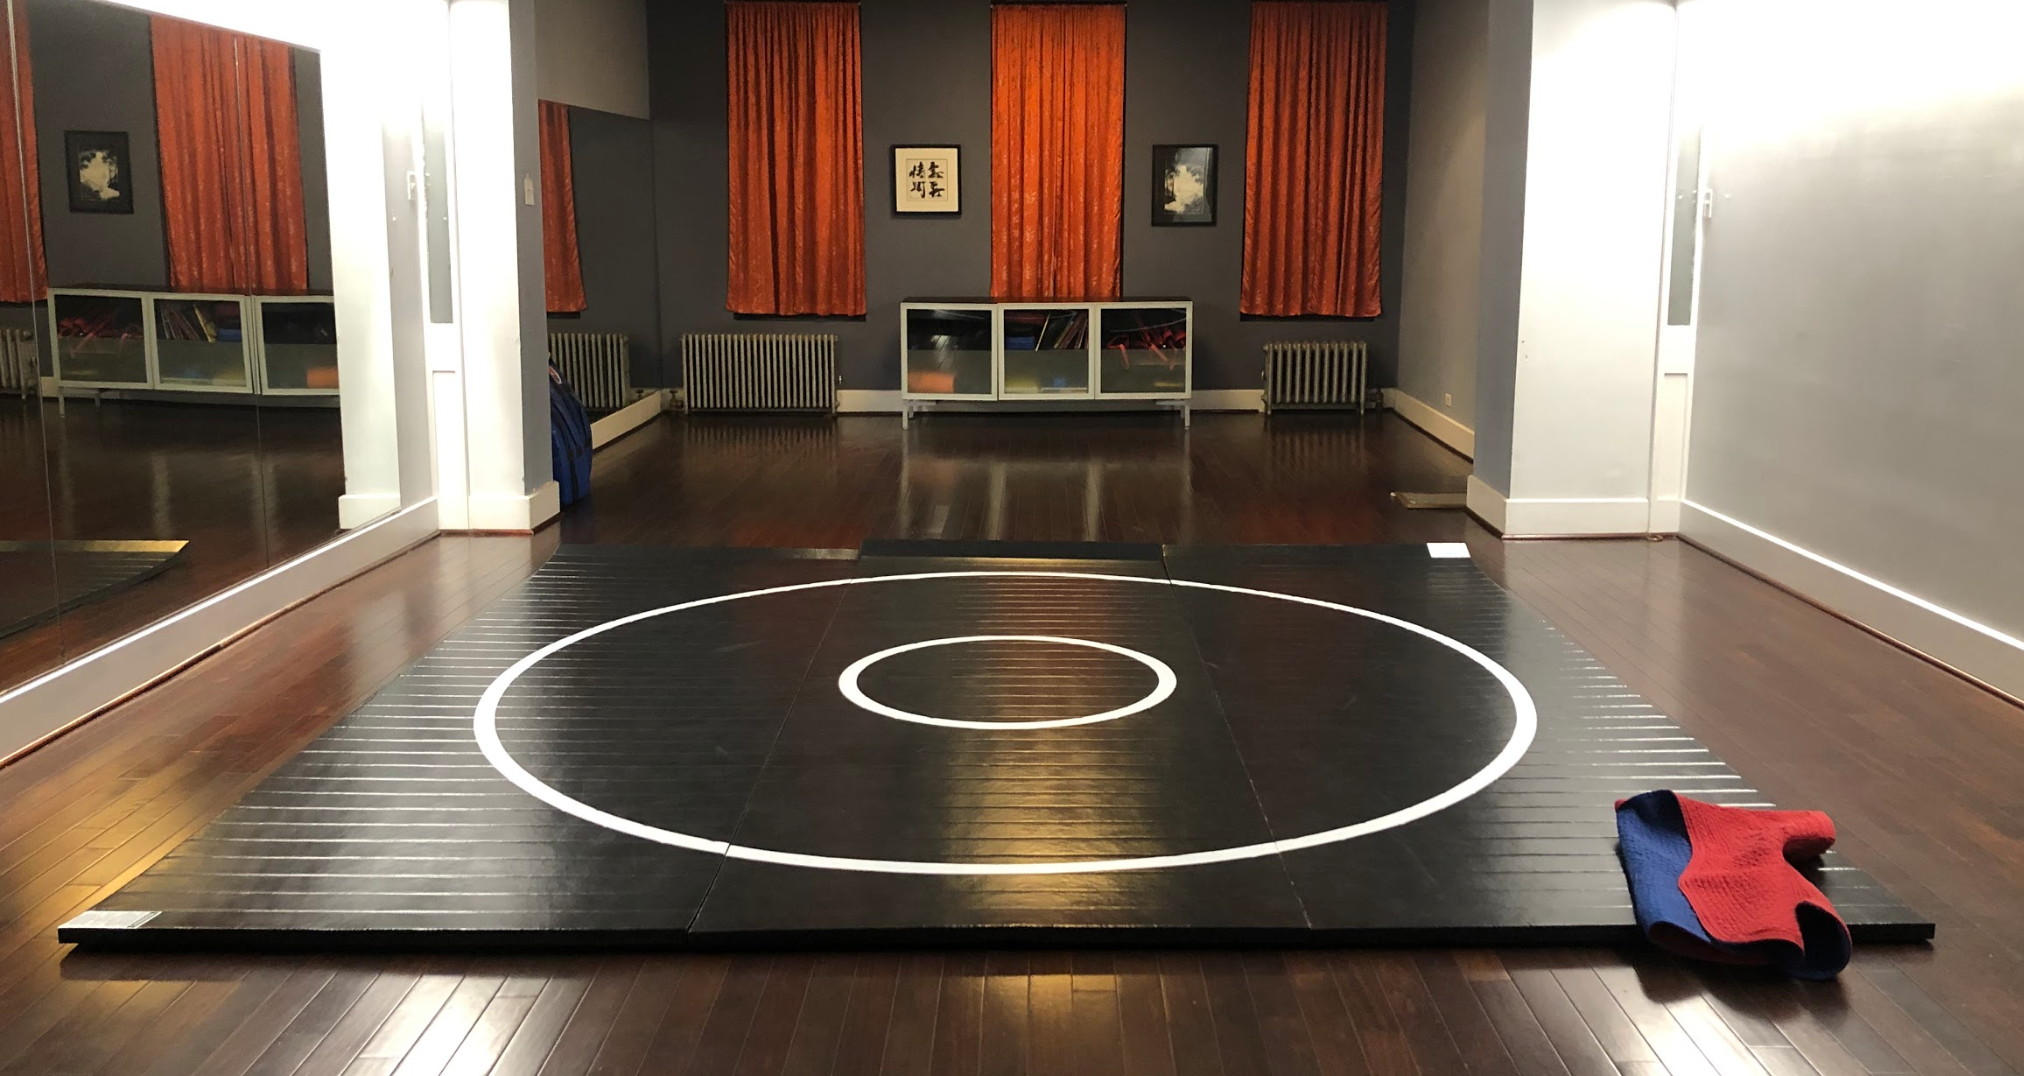 ak athletics home use wrestling mat photo source: https://shuaijiao.us/